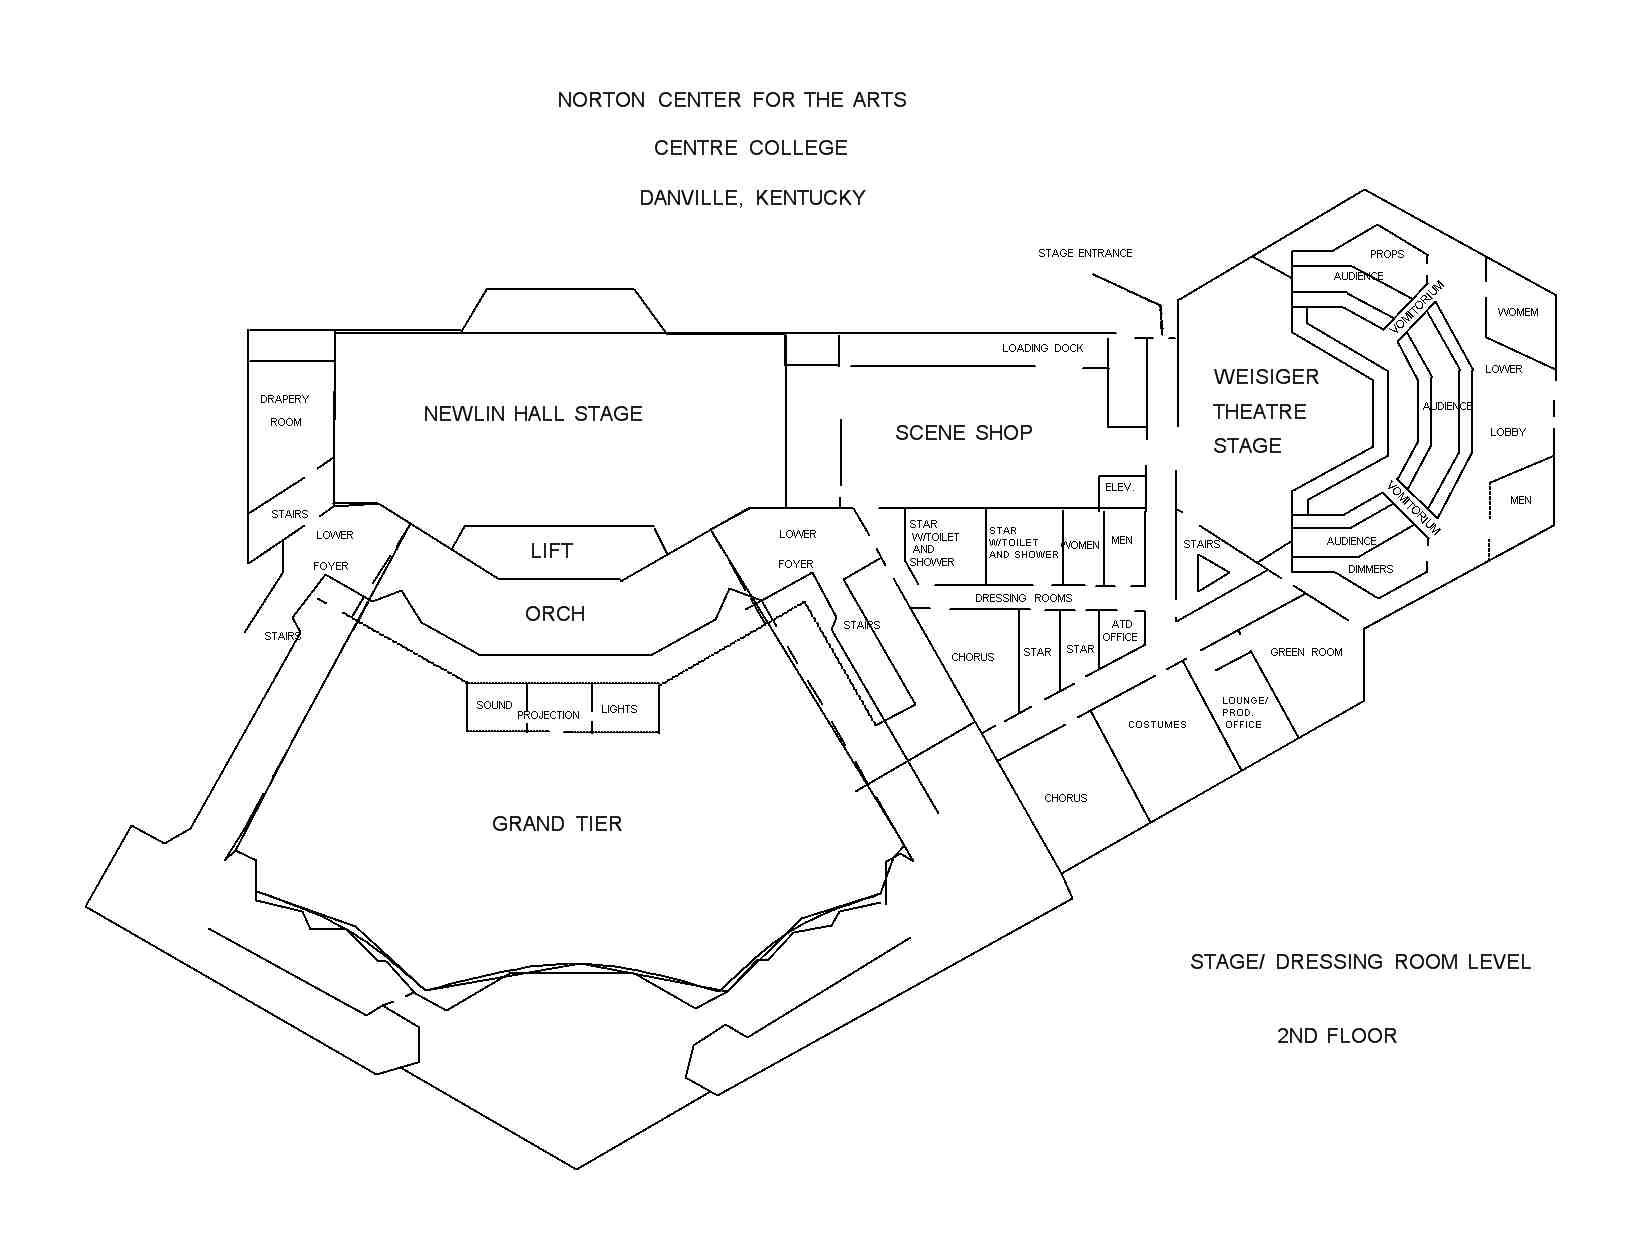 Norton Center for the arts backstage layout - Technical information